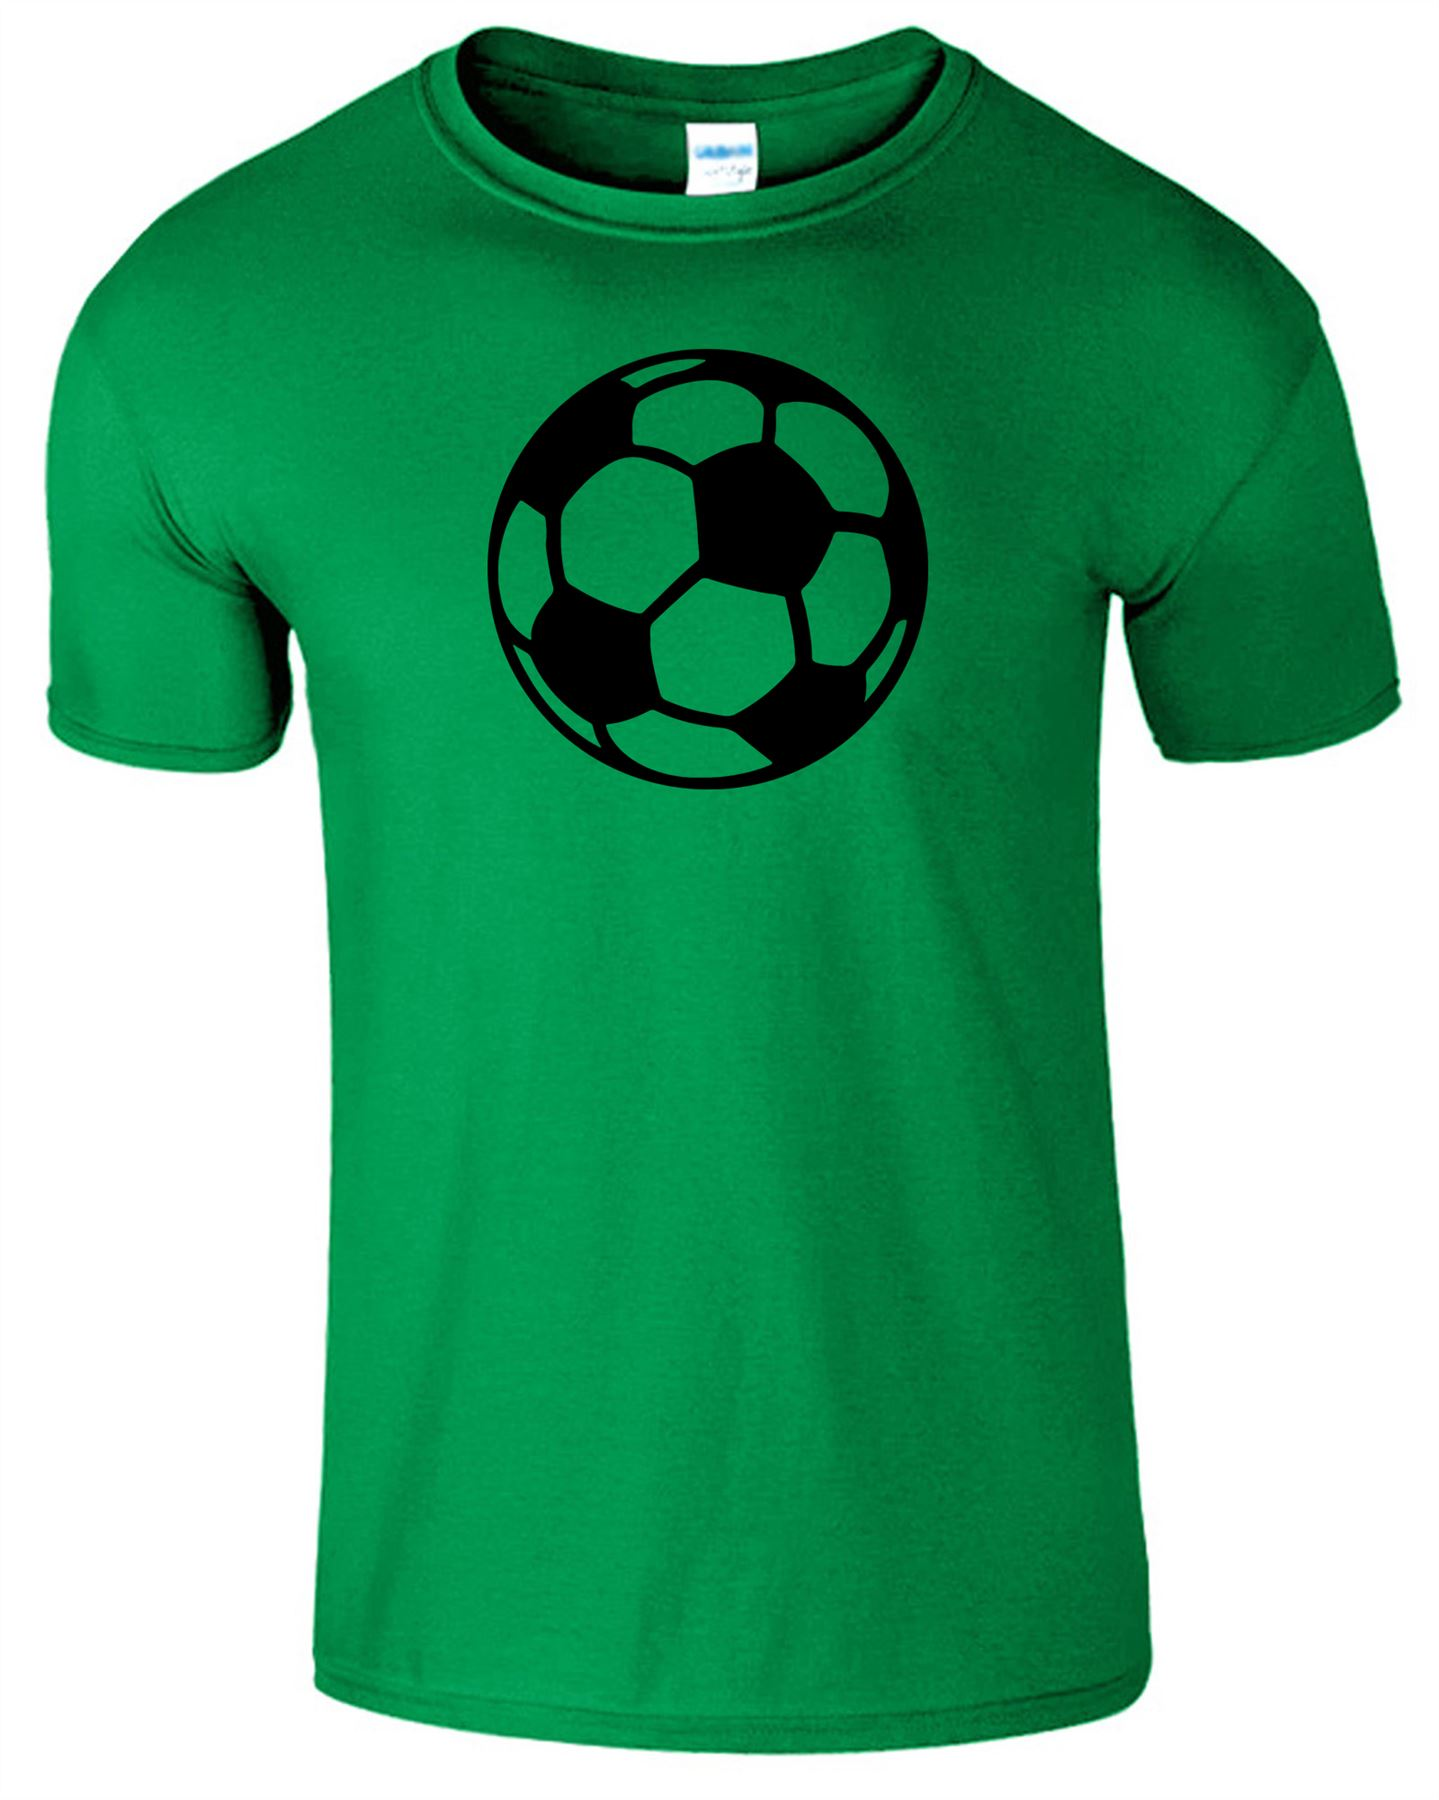 Personnalise-Homme-Football-T-Shirt-Personnalise-Nom-Numero-Filles-Garcons-Soccer-Team-Tee